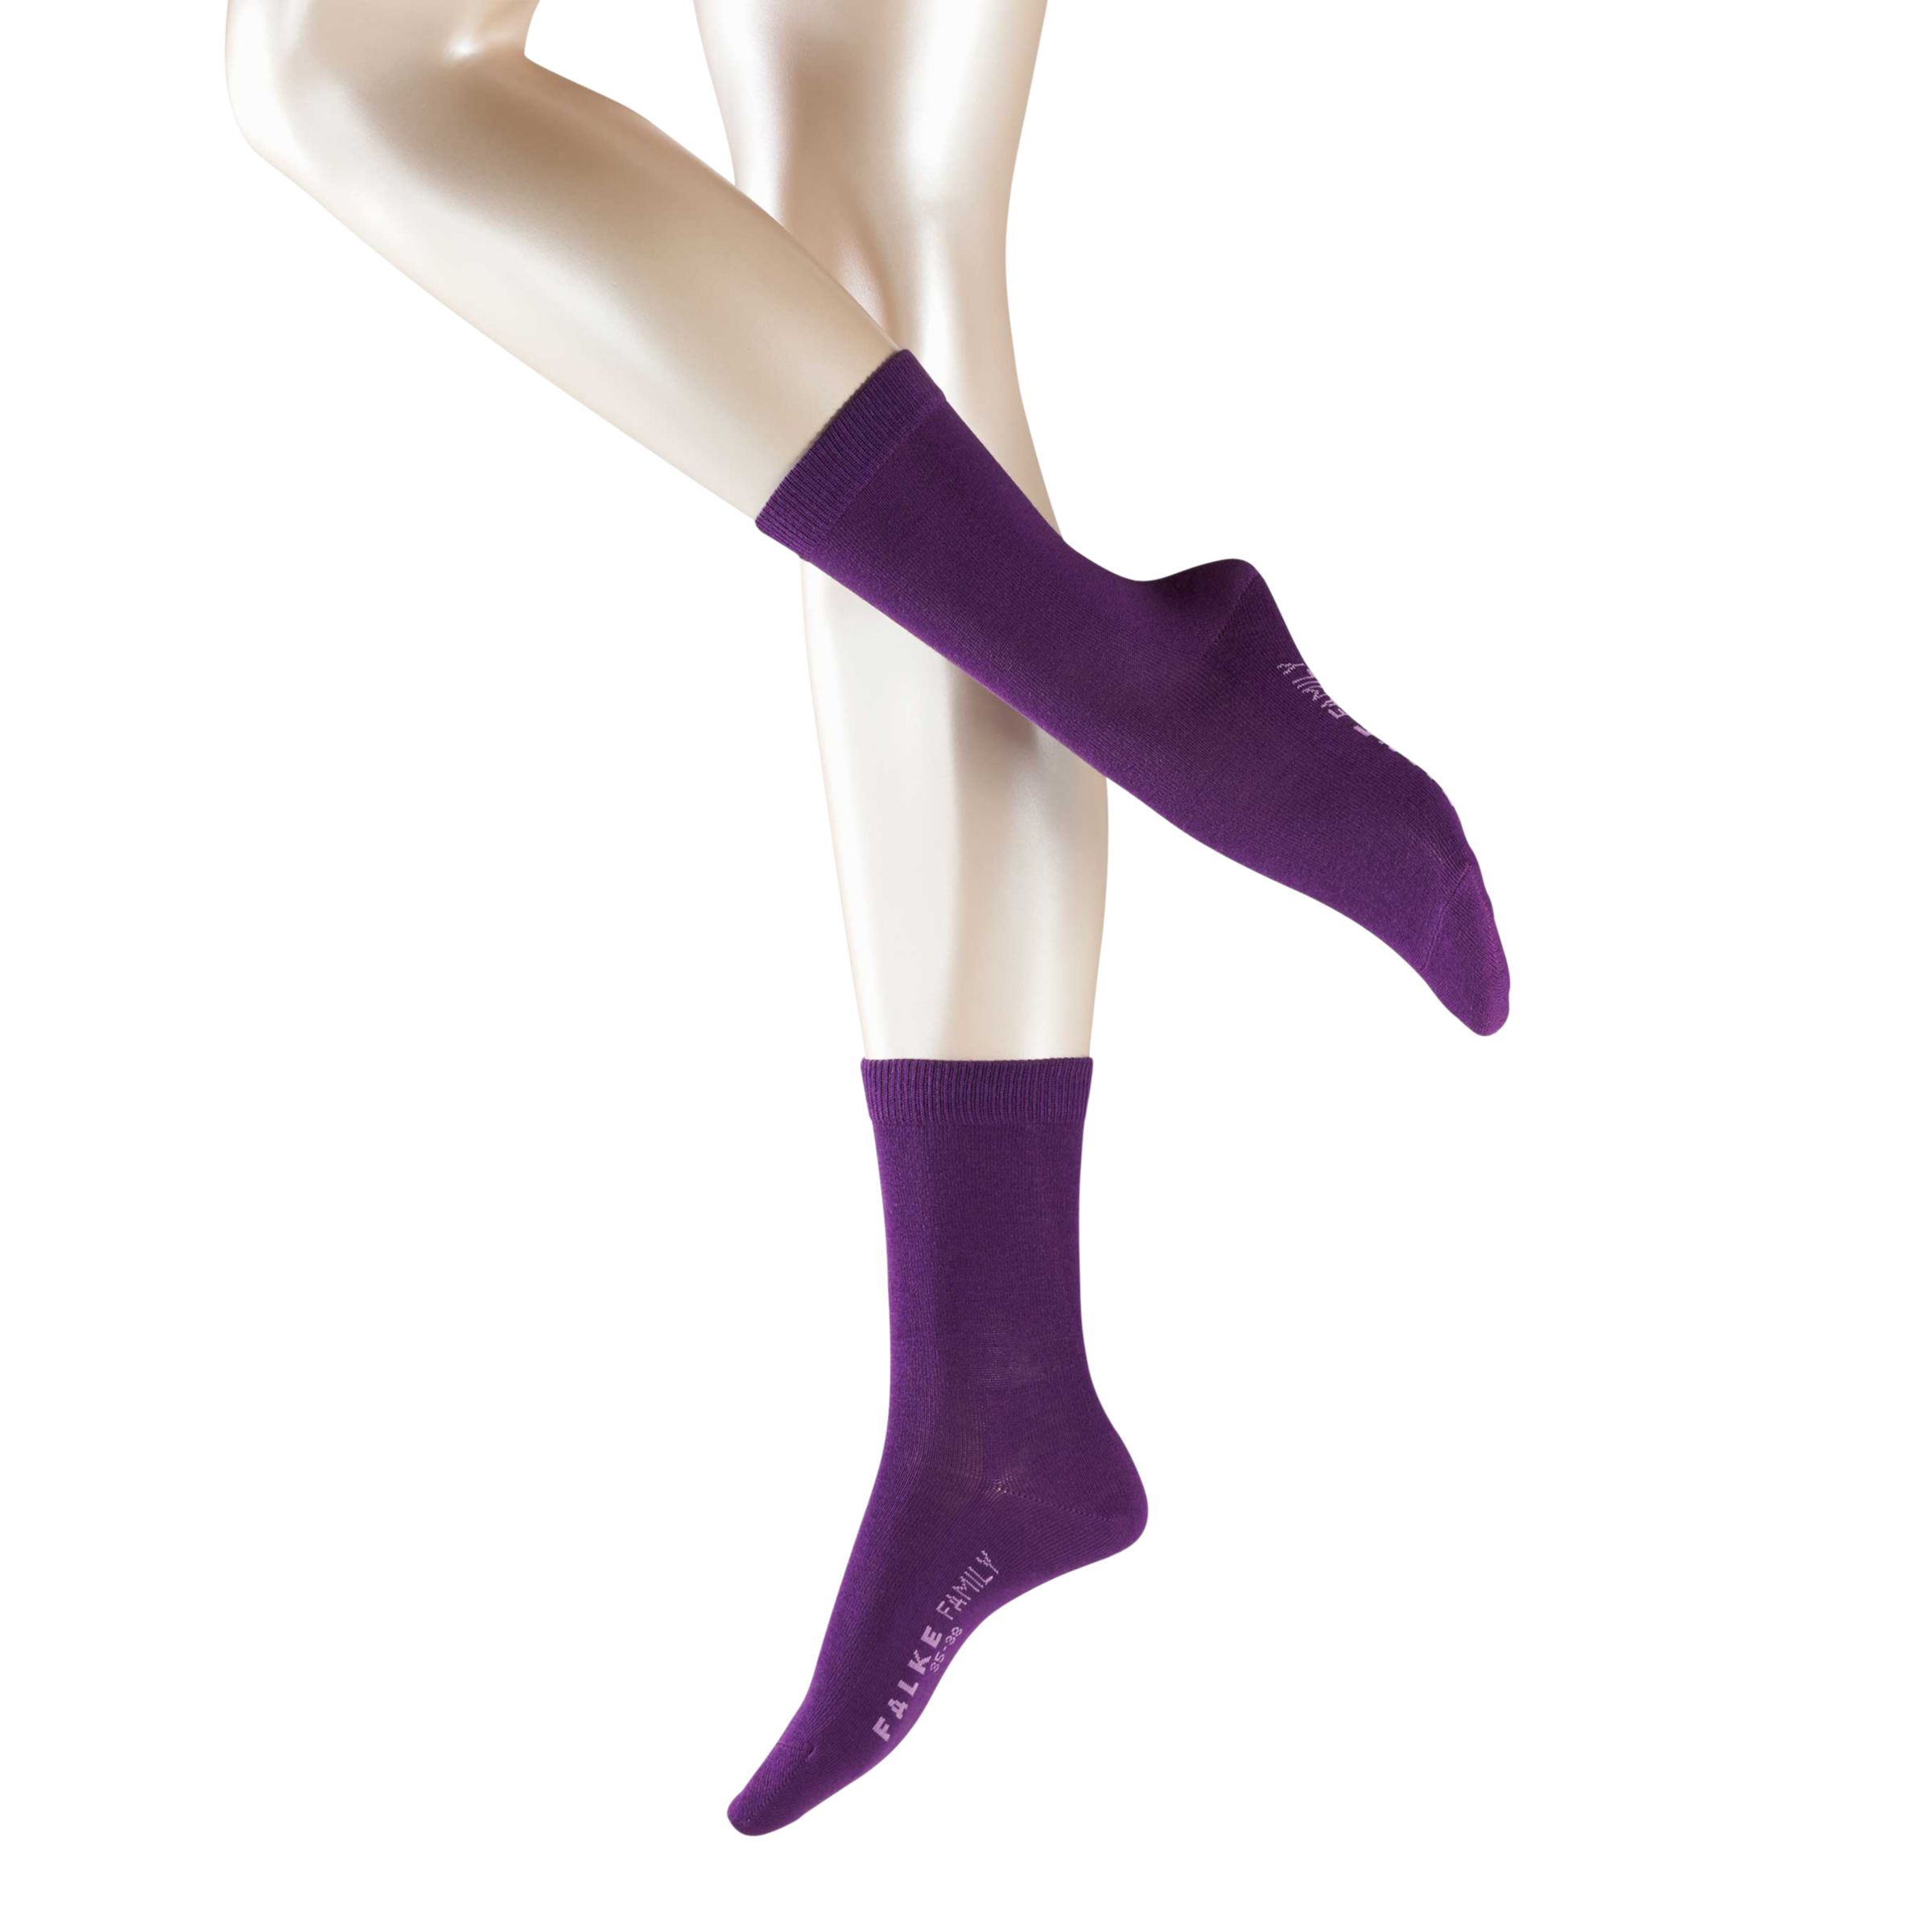 Falke Plain Ankle Socks, Wildberry